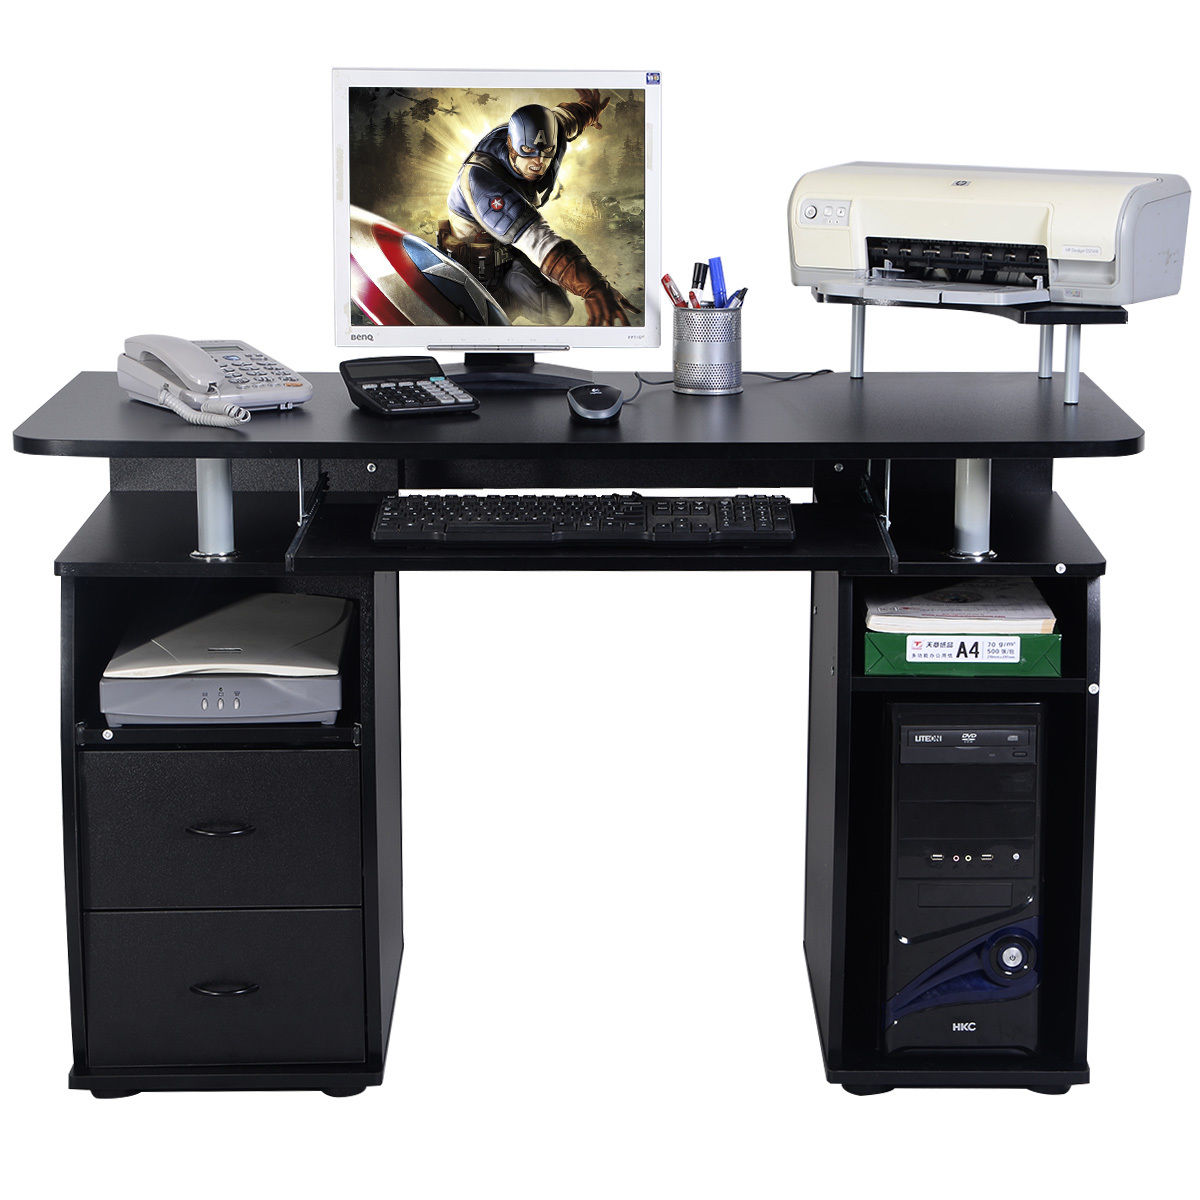 printer and computer desktop desk stand